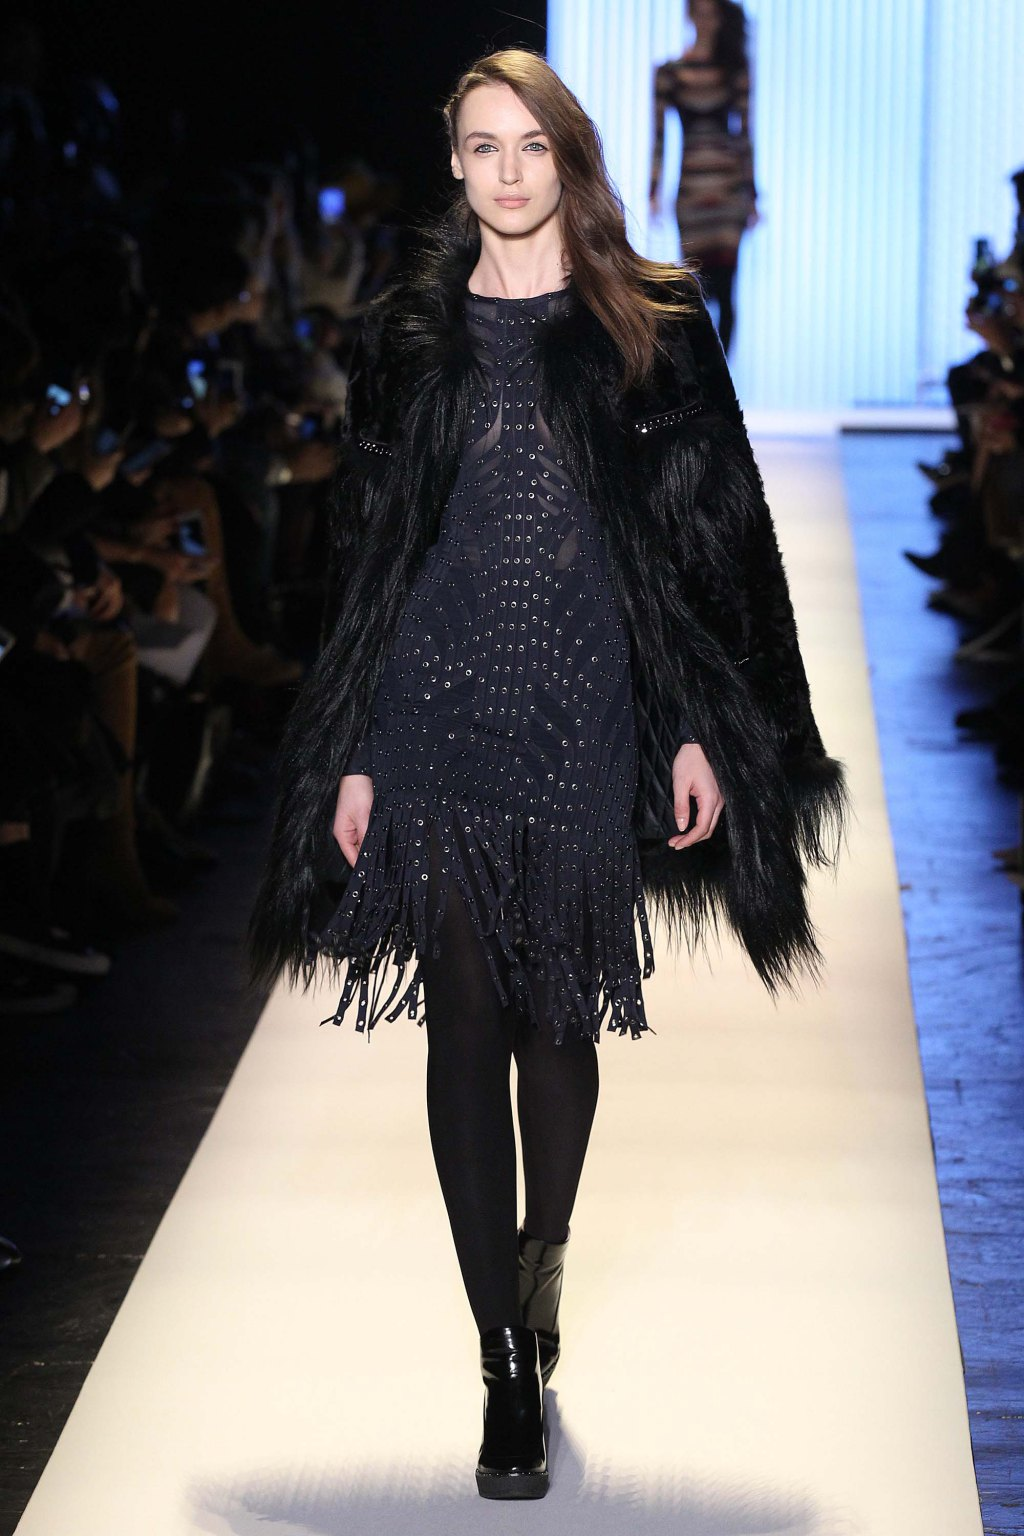 NYFW Hervé Léger Fashion Show Fall:Winter 2016 Louboutins & Love Fashion Blog Esther Santer NYC Street Style Models Collection Hair Makeup Bandage Dresses Pretty Fringe Pink Trends White Hair Inspo Event Press Coverage Details Photos Jacket Outfit.jpg